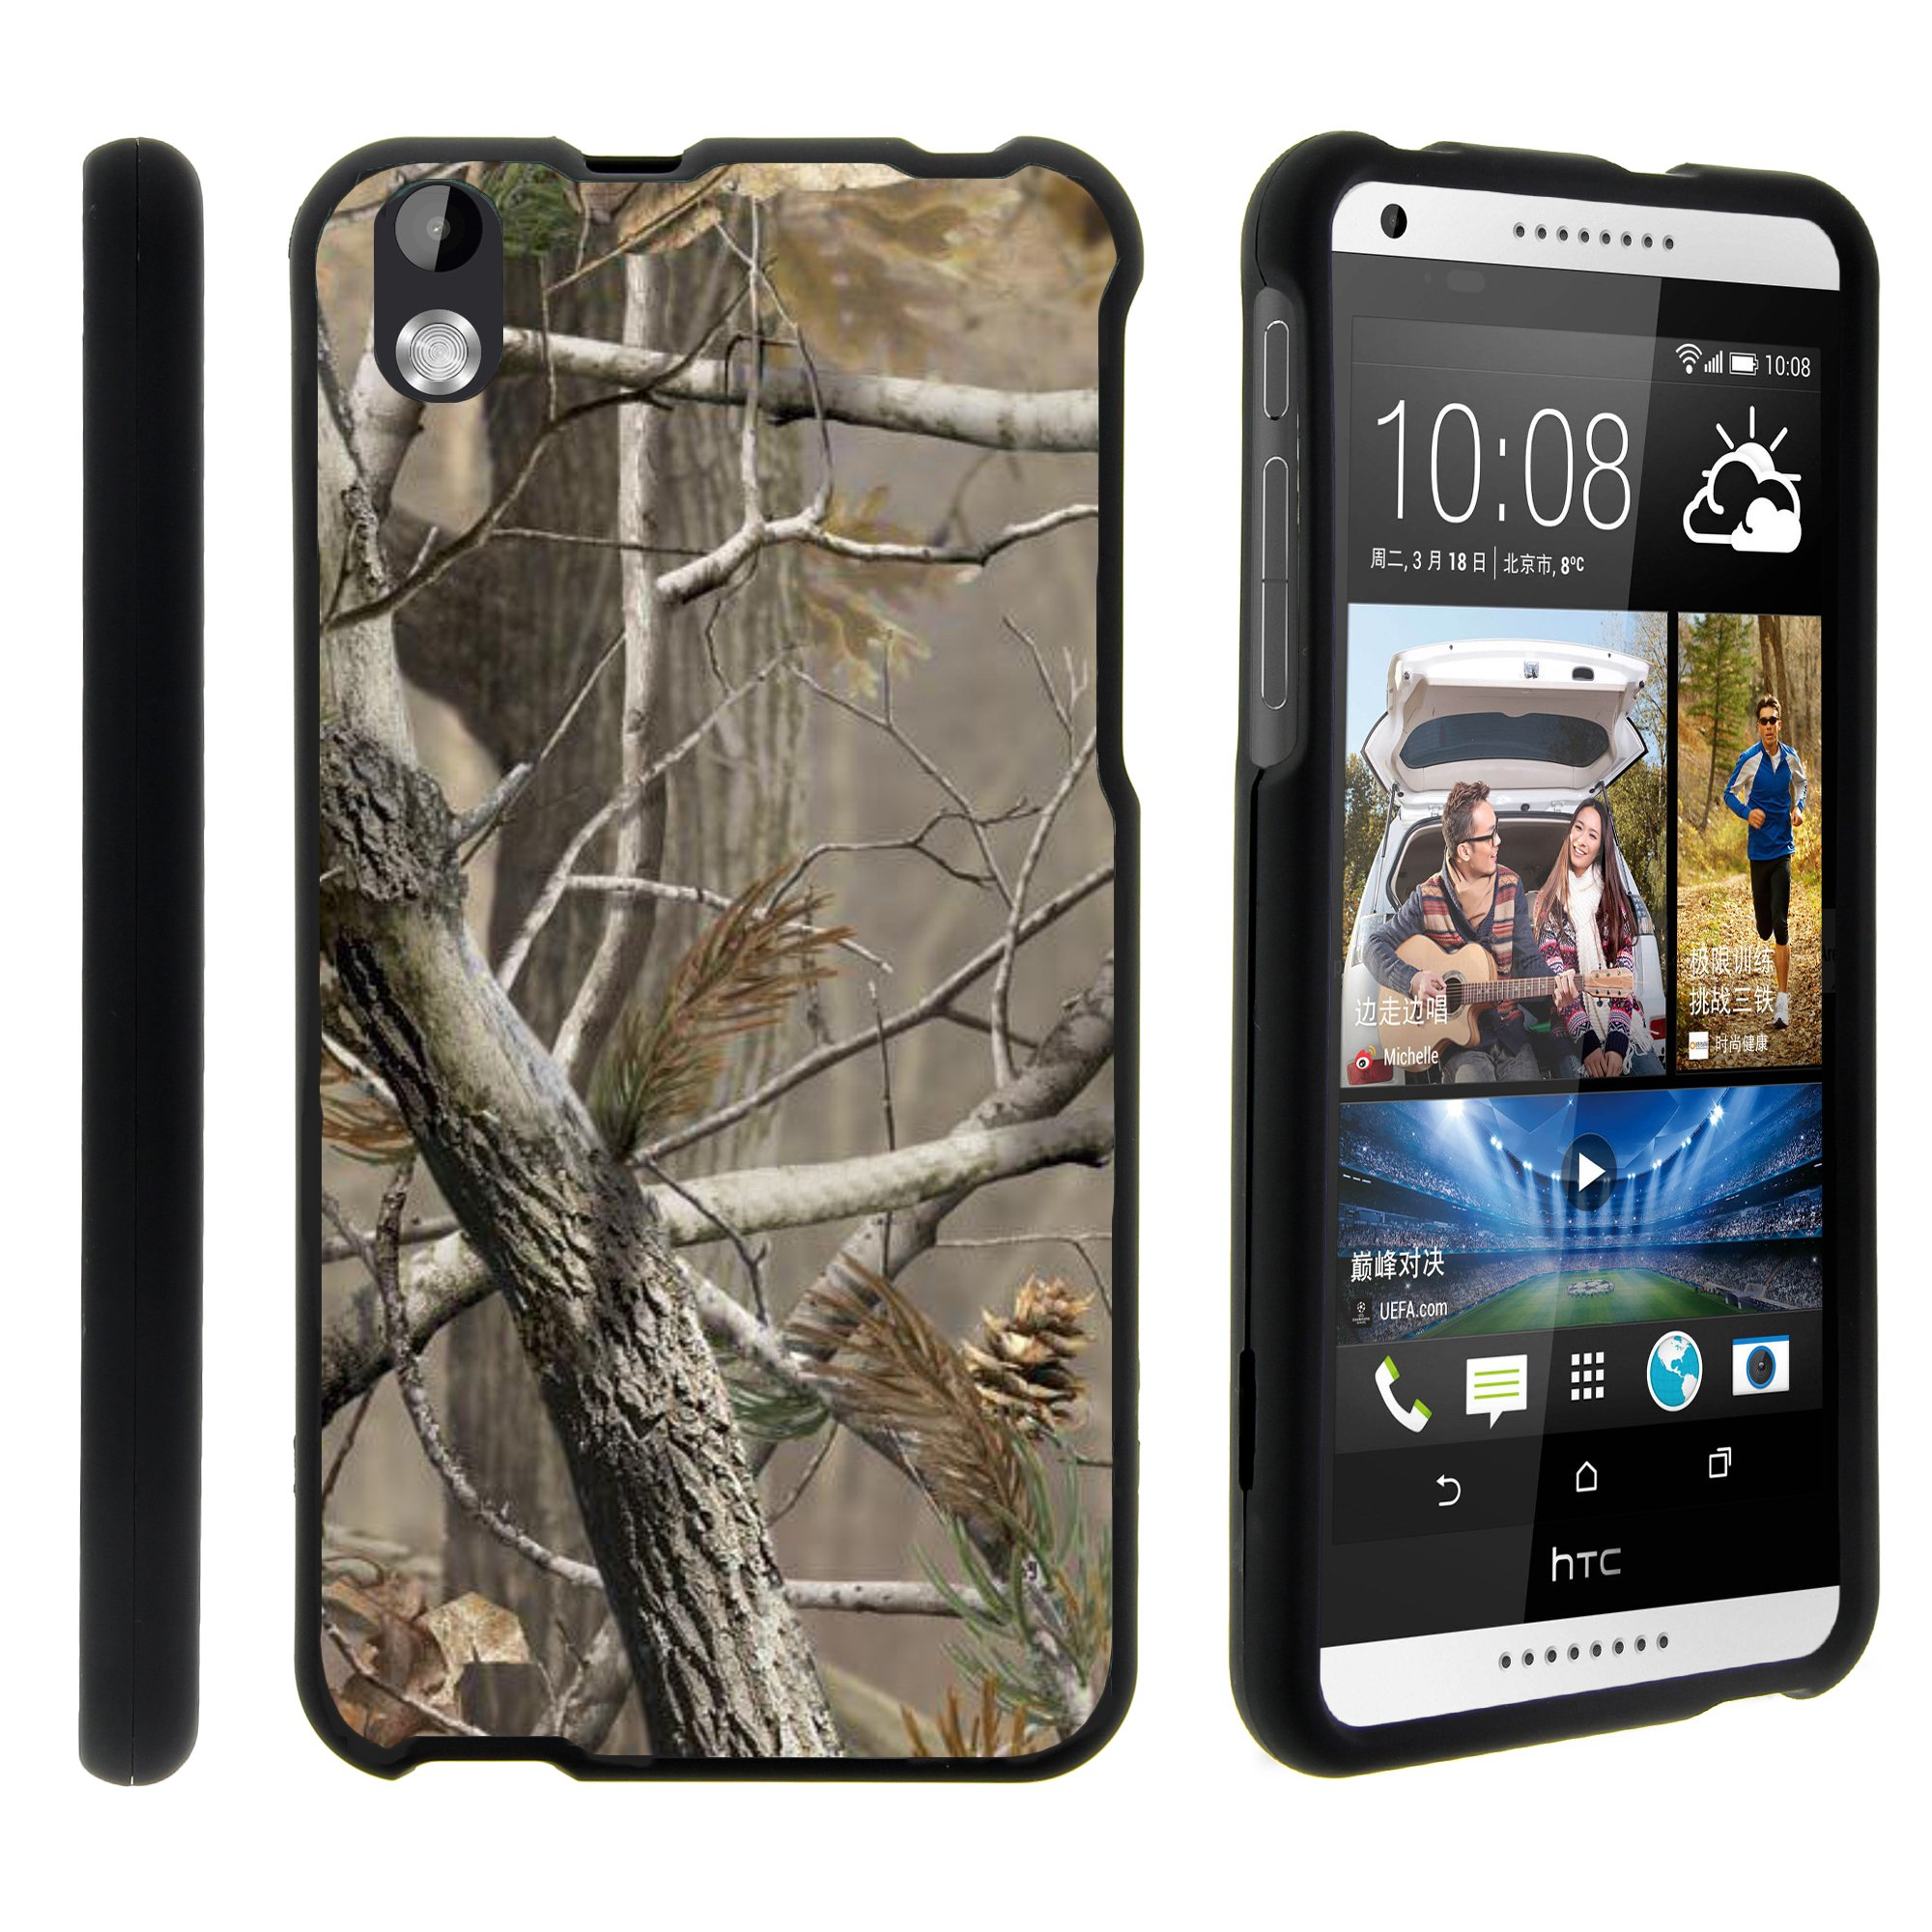 HTC Desire 816, [SNAP SHELL][Matte Black] 2 Piece Snap On Rubberized Hard Plastic Cell Phone Cover with Cool Designs - Hunter Camouflage